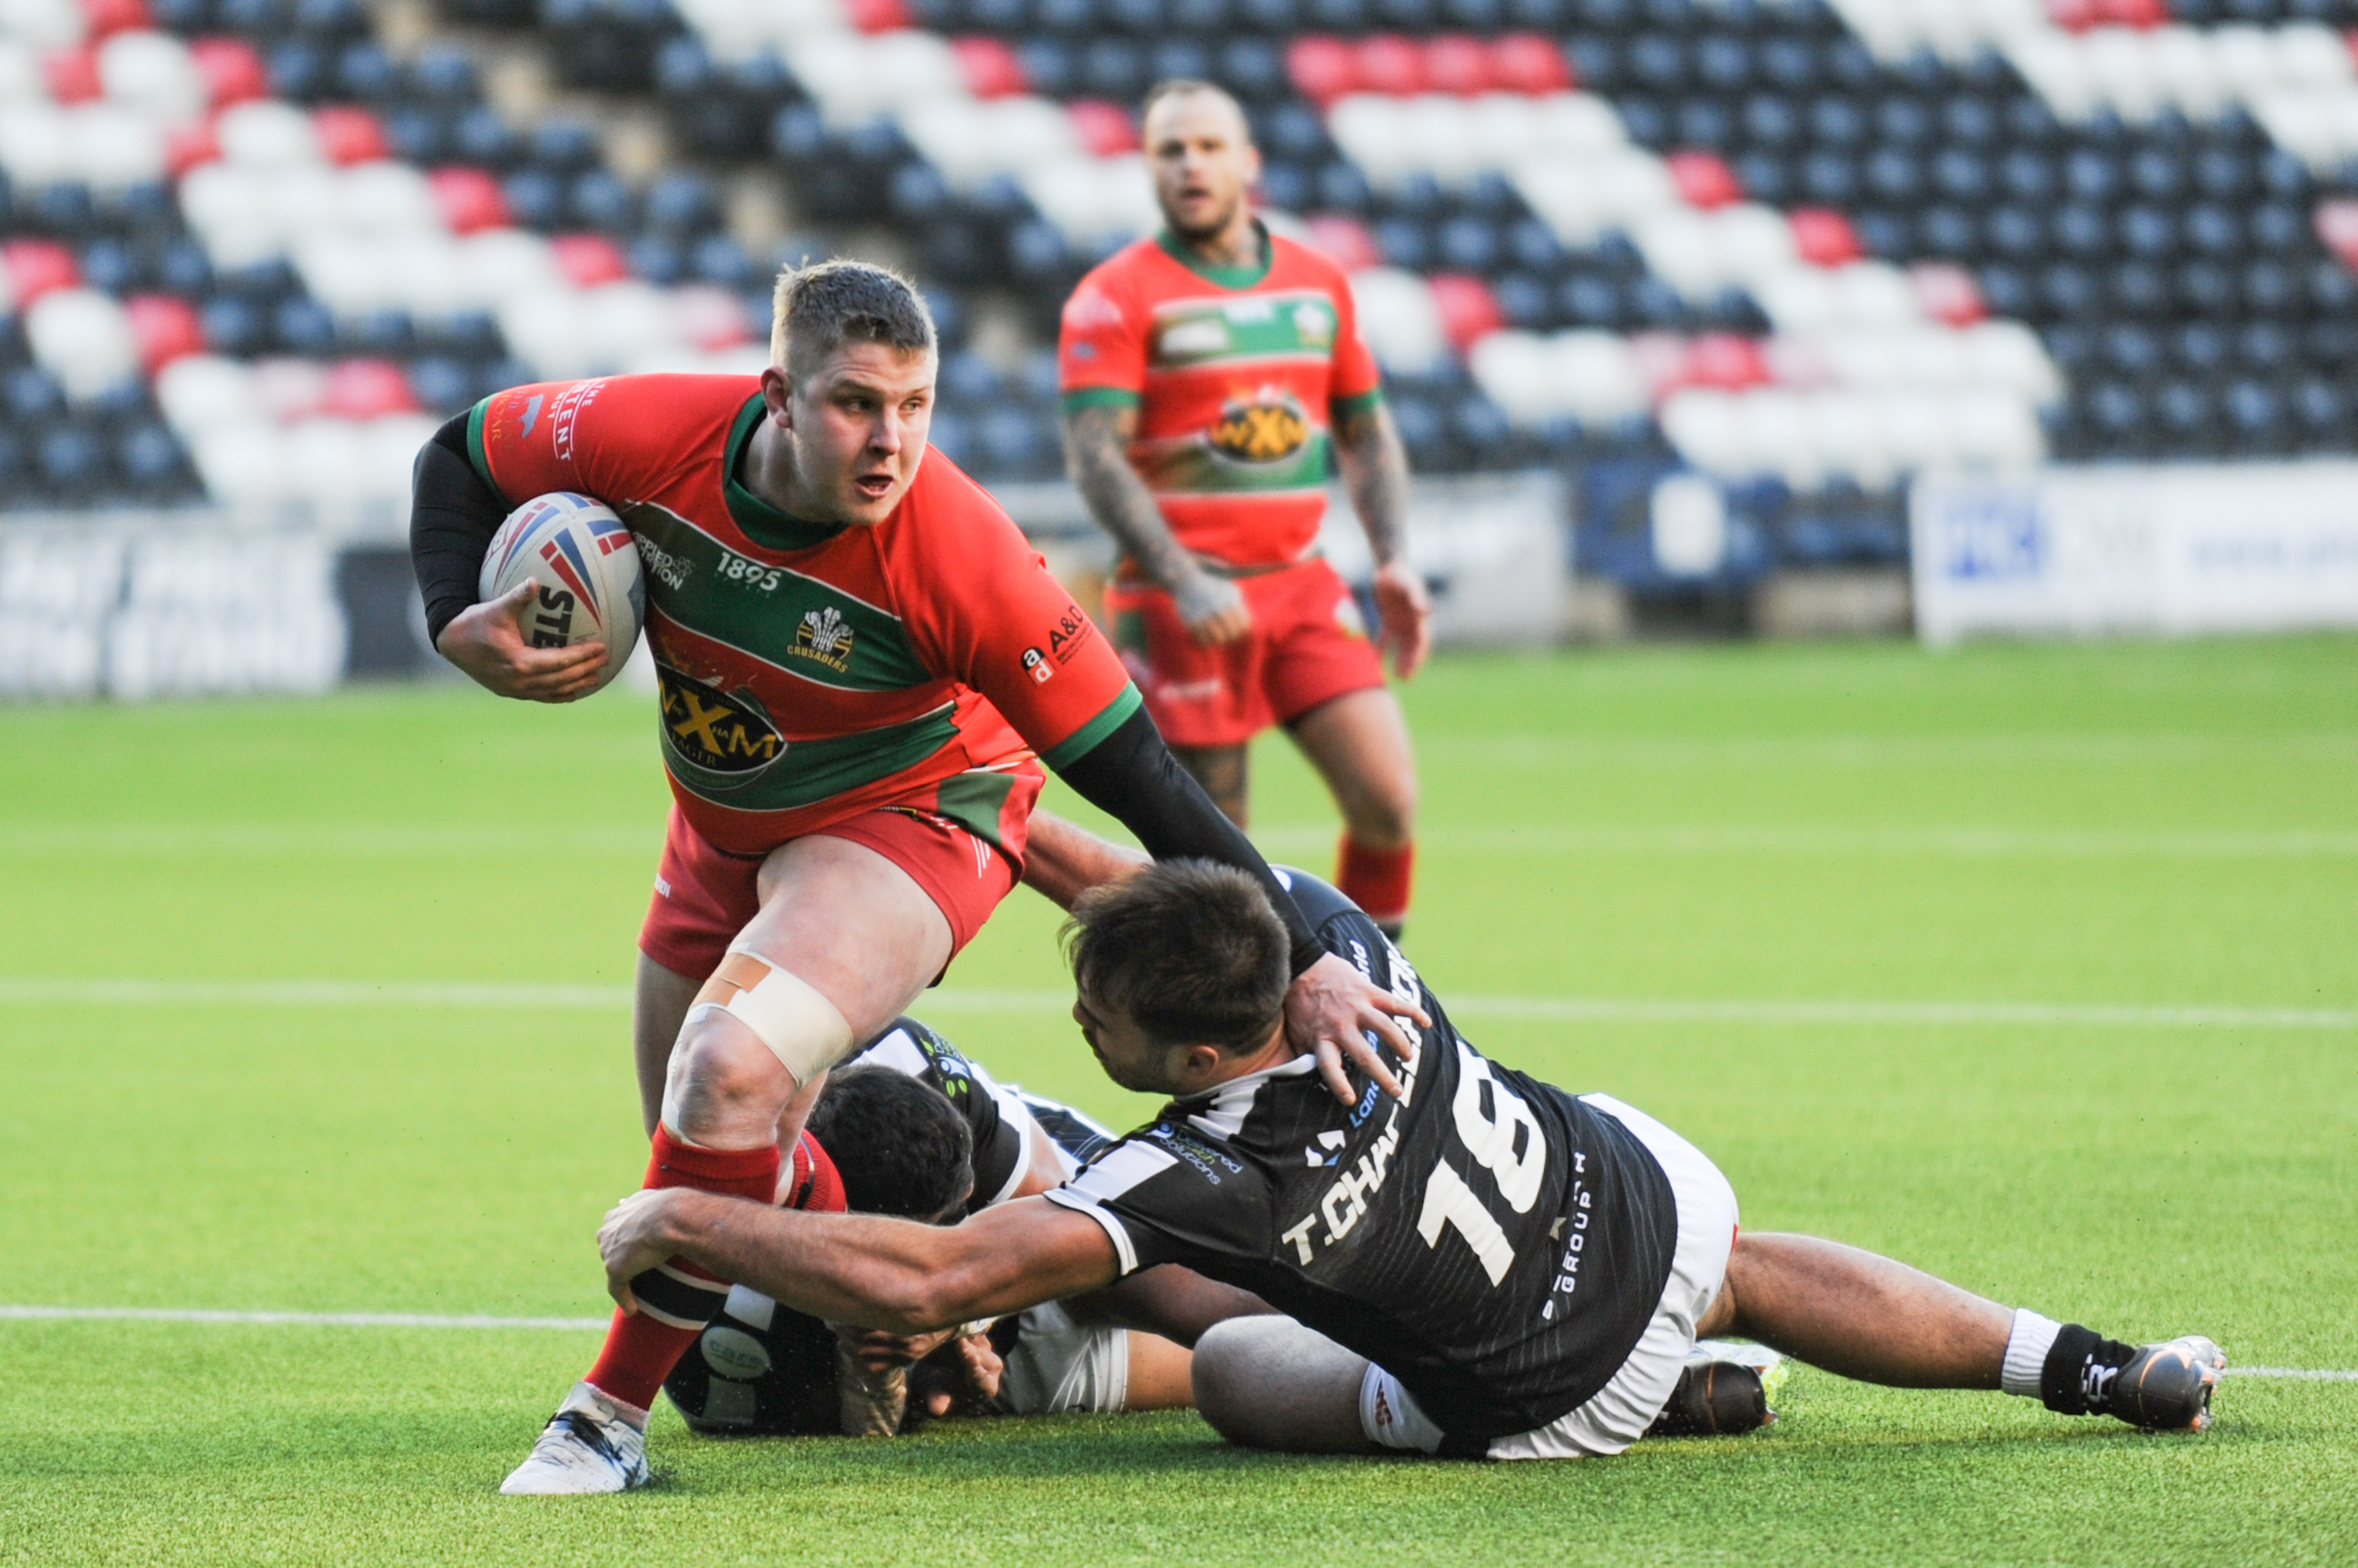 Report: Widnes Vikings 48-6 North Wales Crusaders